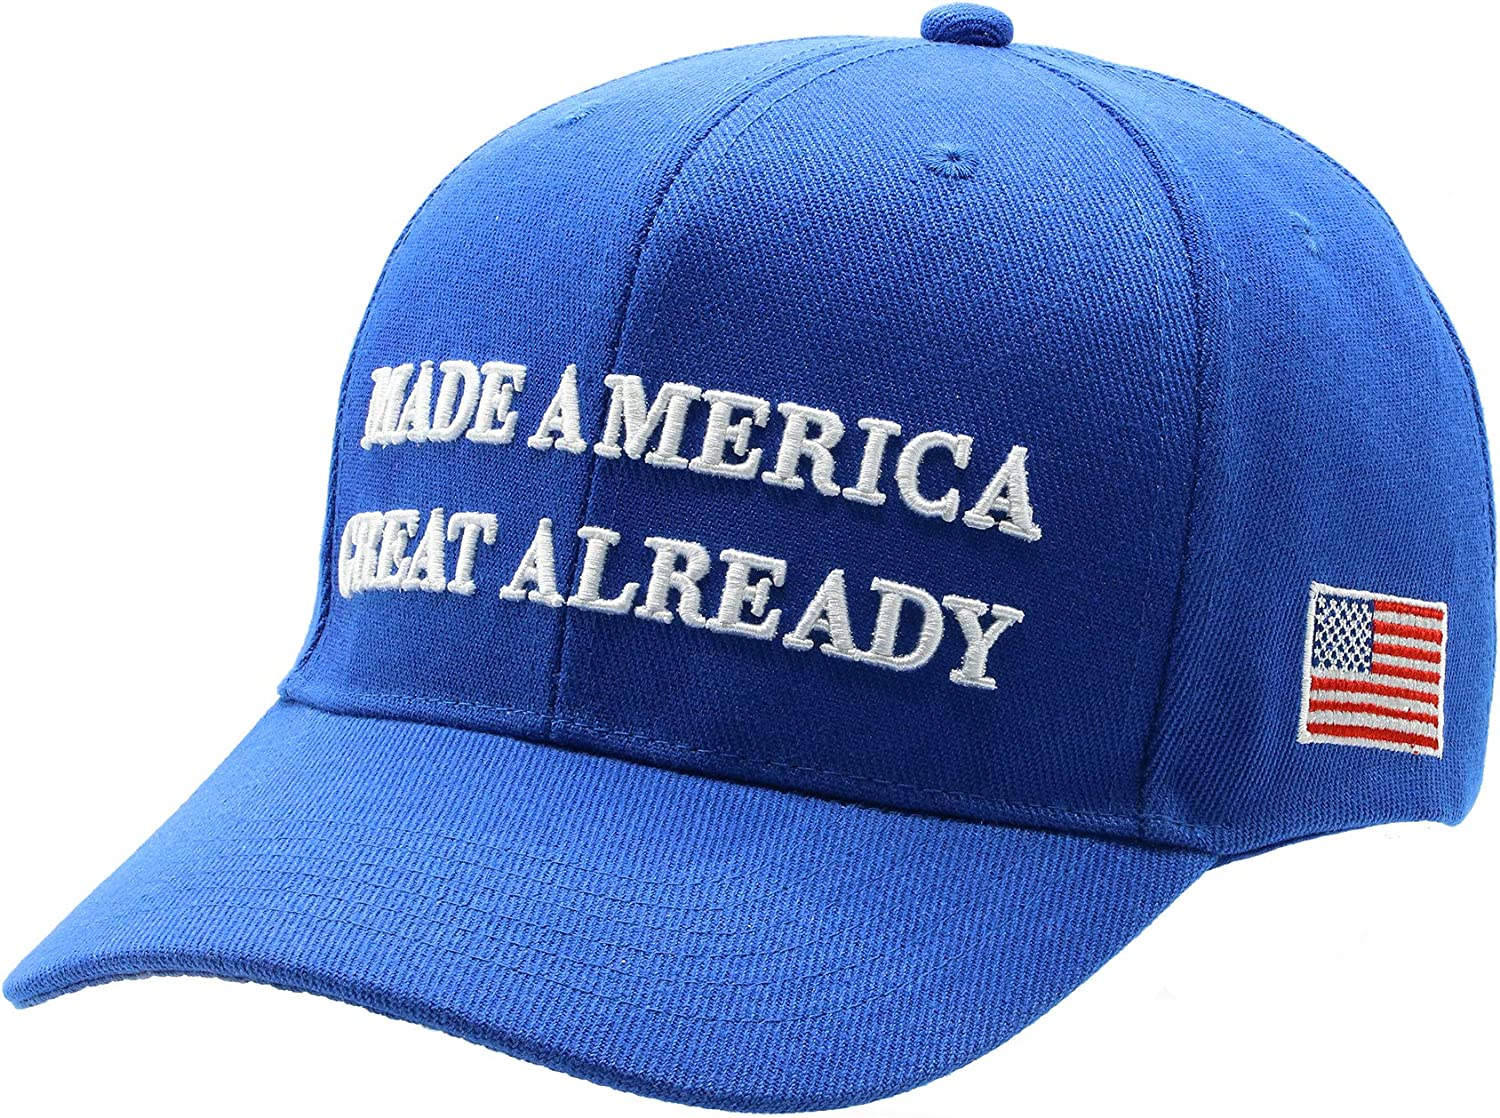 Made Great Already Hat Blue...